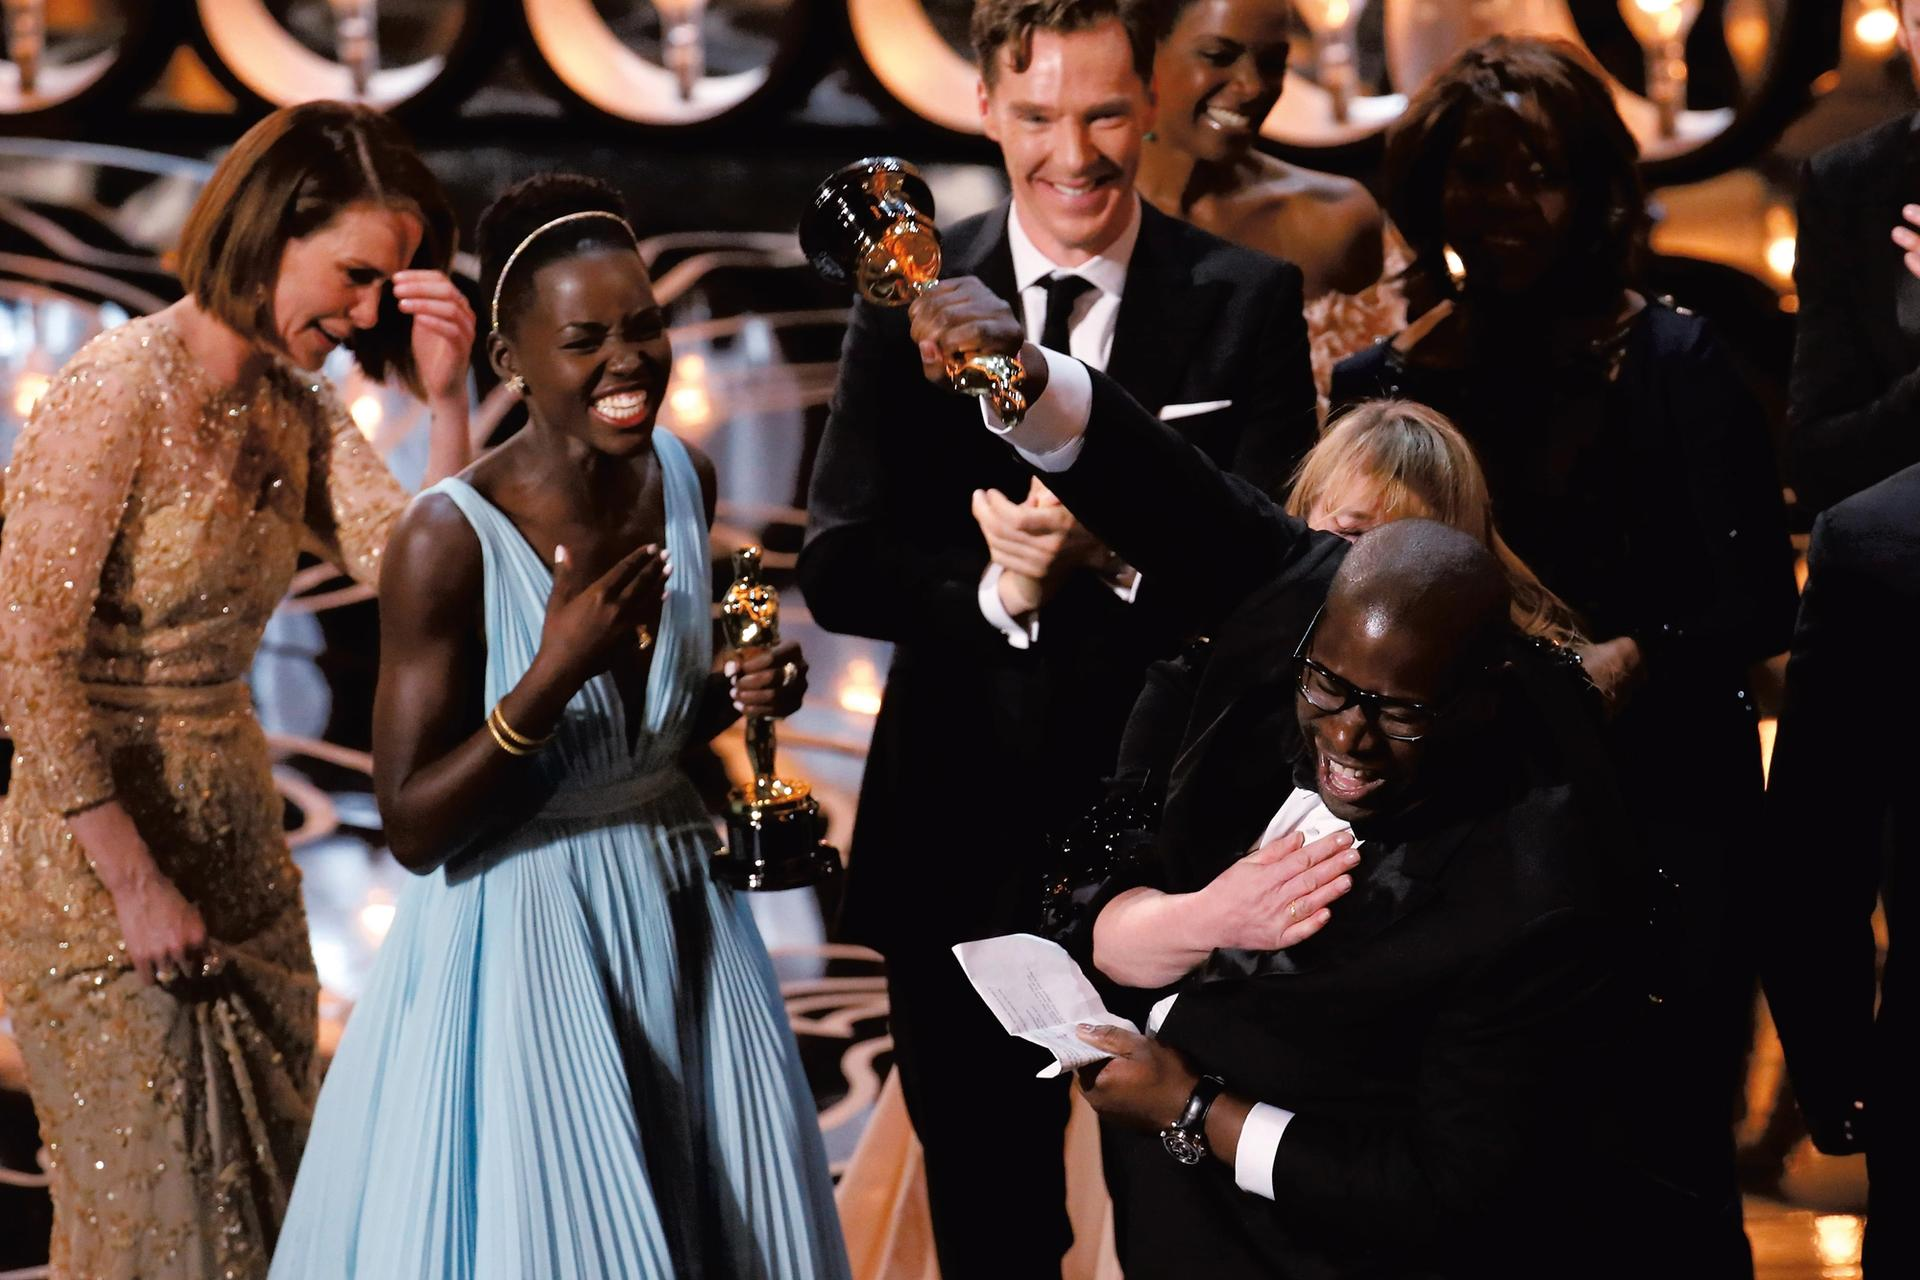 Steve McQueen receiving his Oscar for the 2013 film 12 Years a Slave Photo: © Los Angeles Times